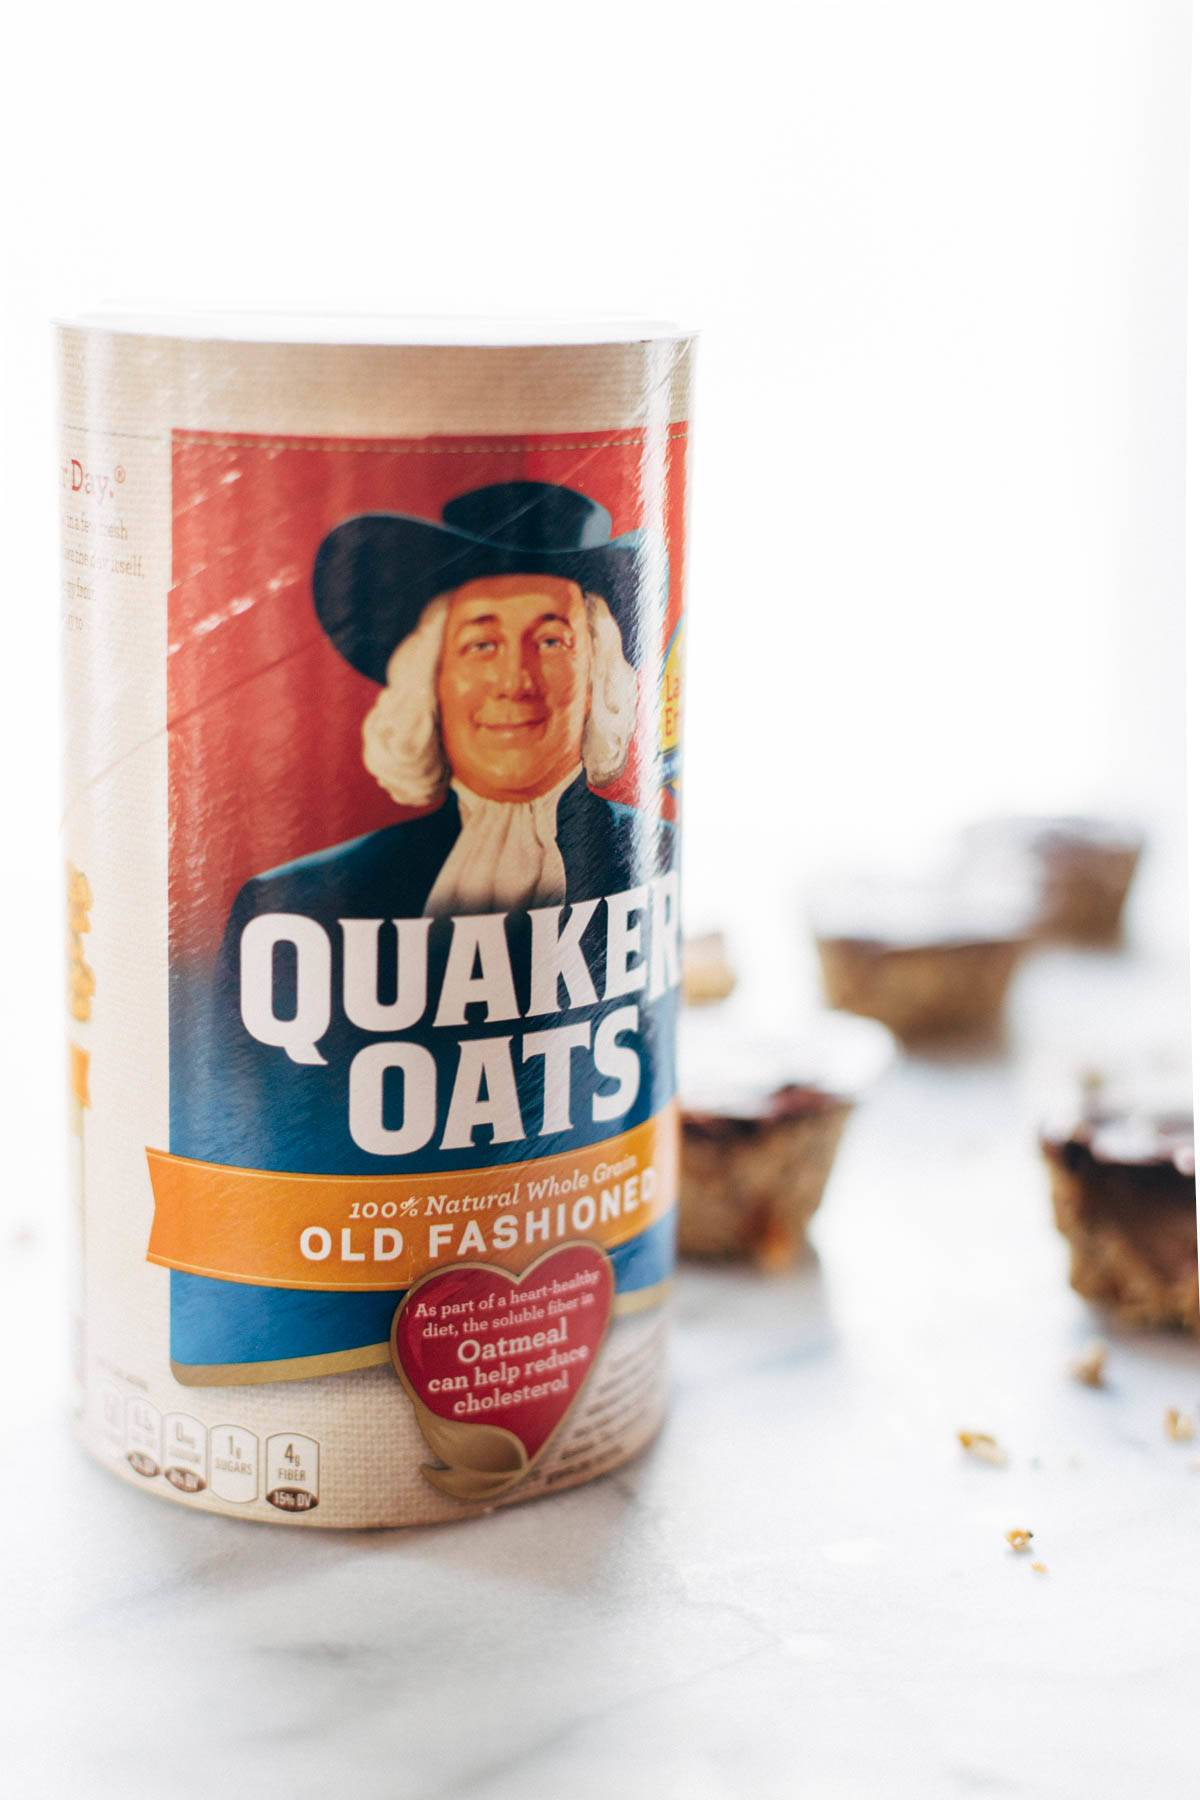 Old fashioned quaker oats.